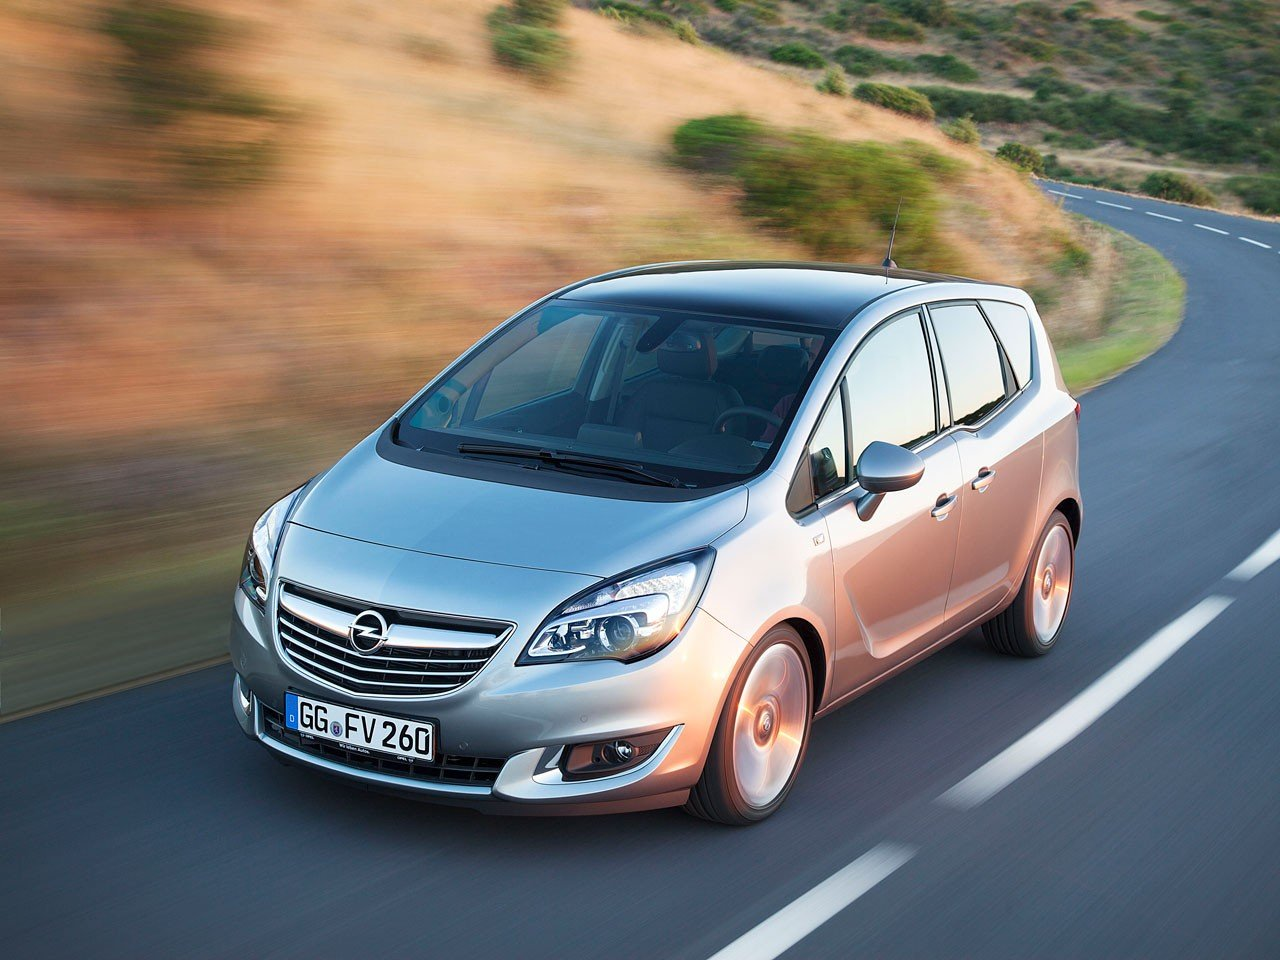 opel meriva ontvangt facelift autonieuws. Black Bedroom Furniture Sets. Home Design Ideas